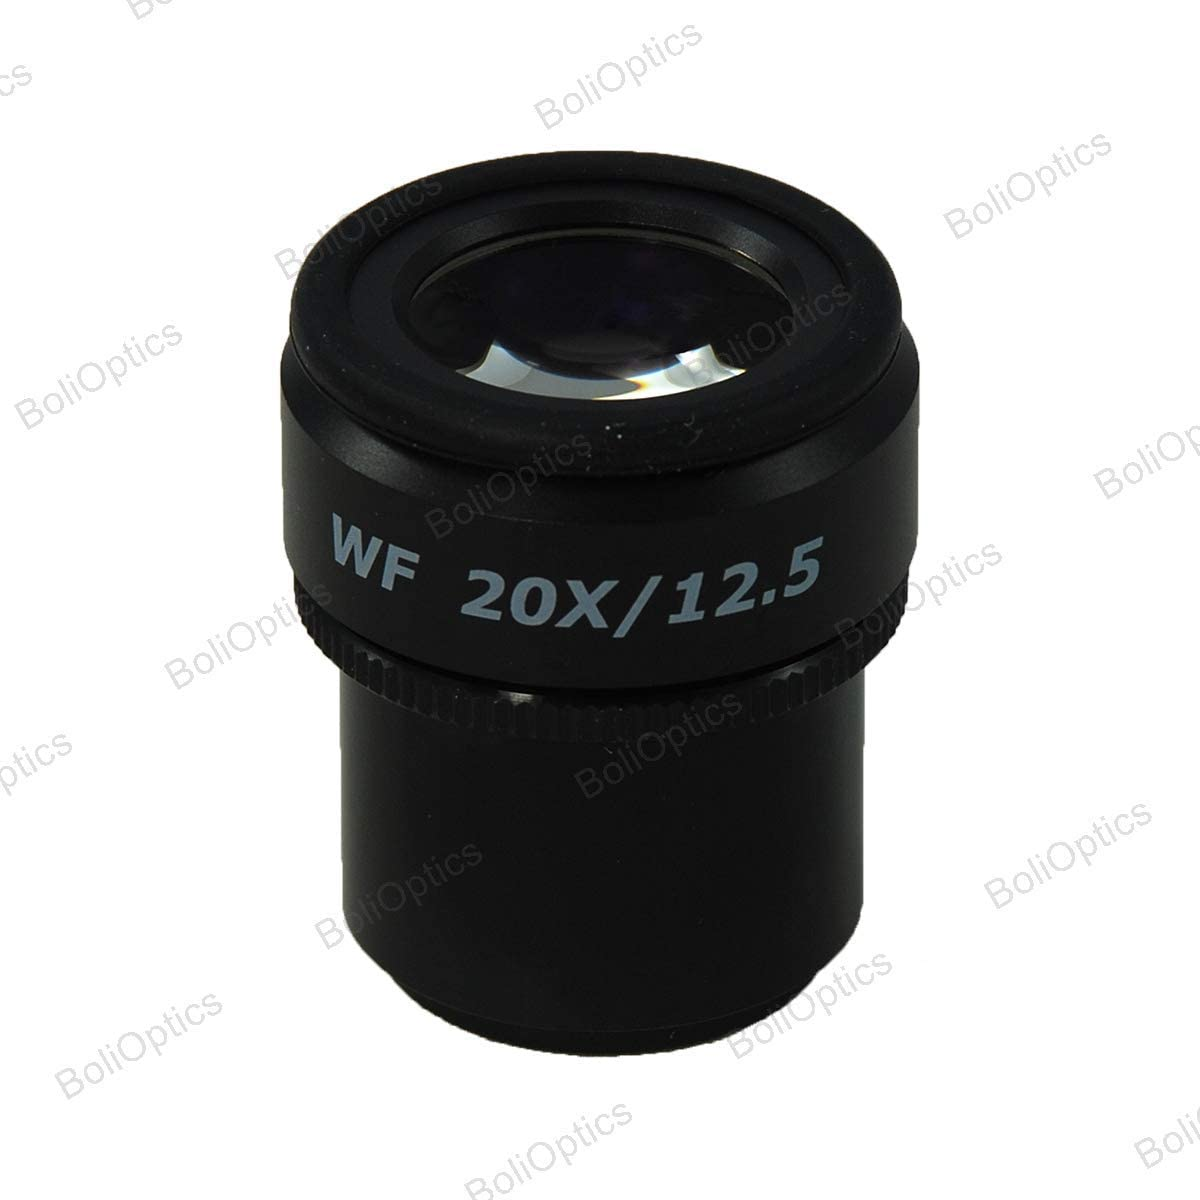 SZ17013642 Adjustable Diopter Mounting Size 30mm Cross Line FOV 12.5mm BoliOptics WF 20X Widefield Focusable Microscope Eyepiece with Reticle High Eyepoint One